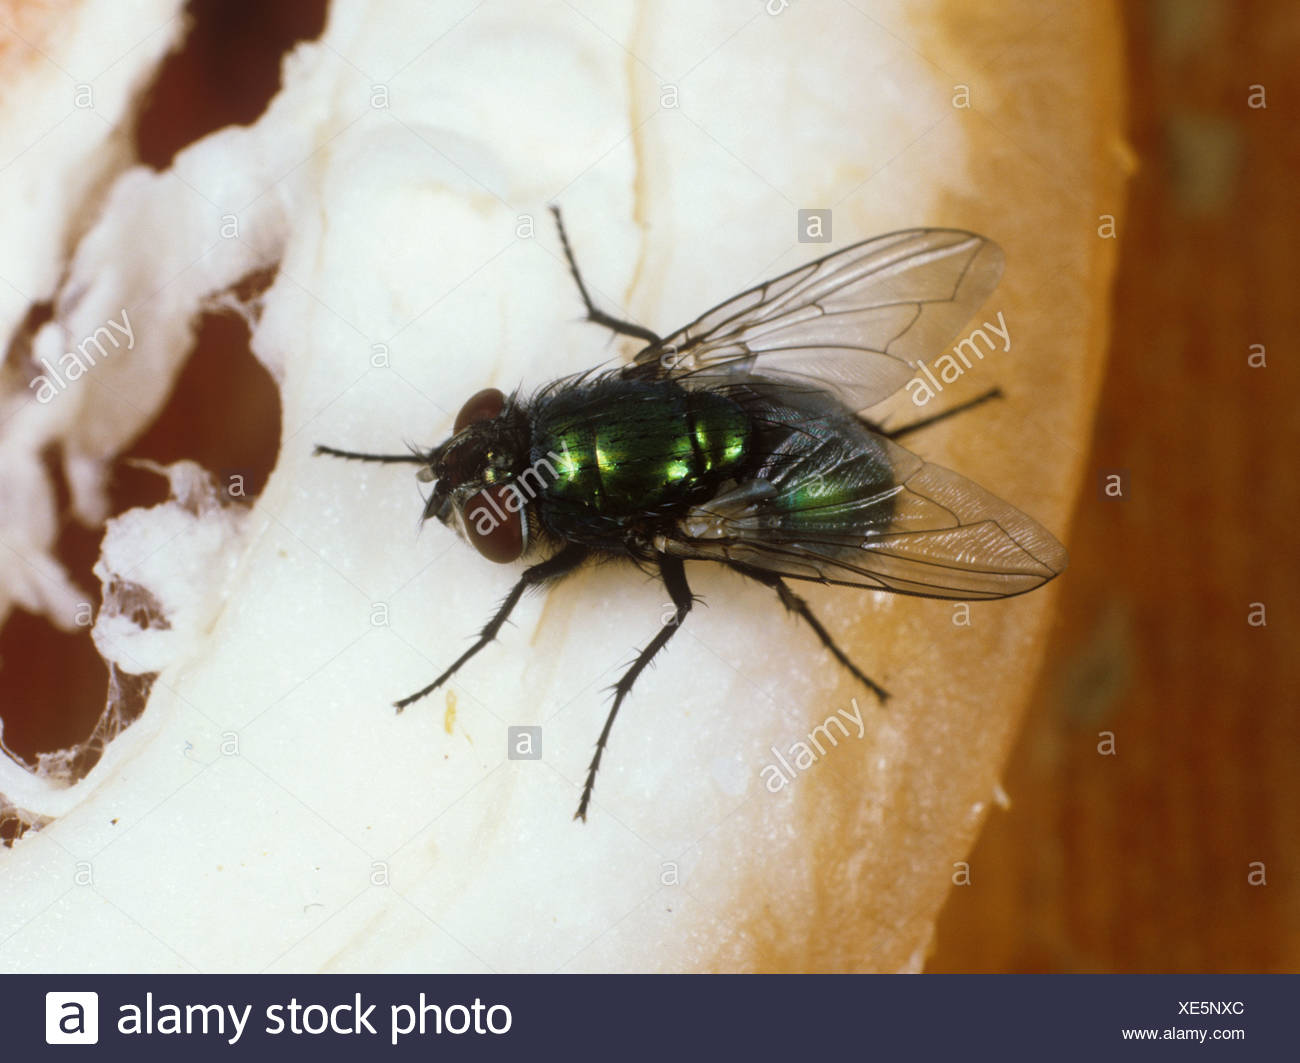 Green-bottle (Lucilia sericata) adult fly - Stock Image